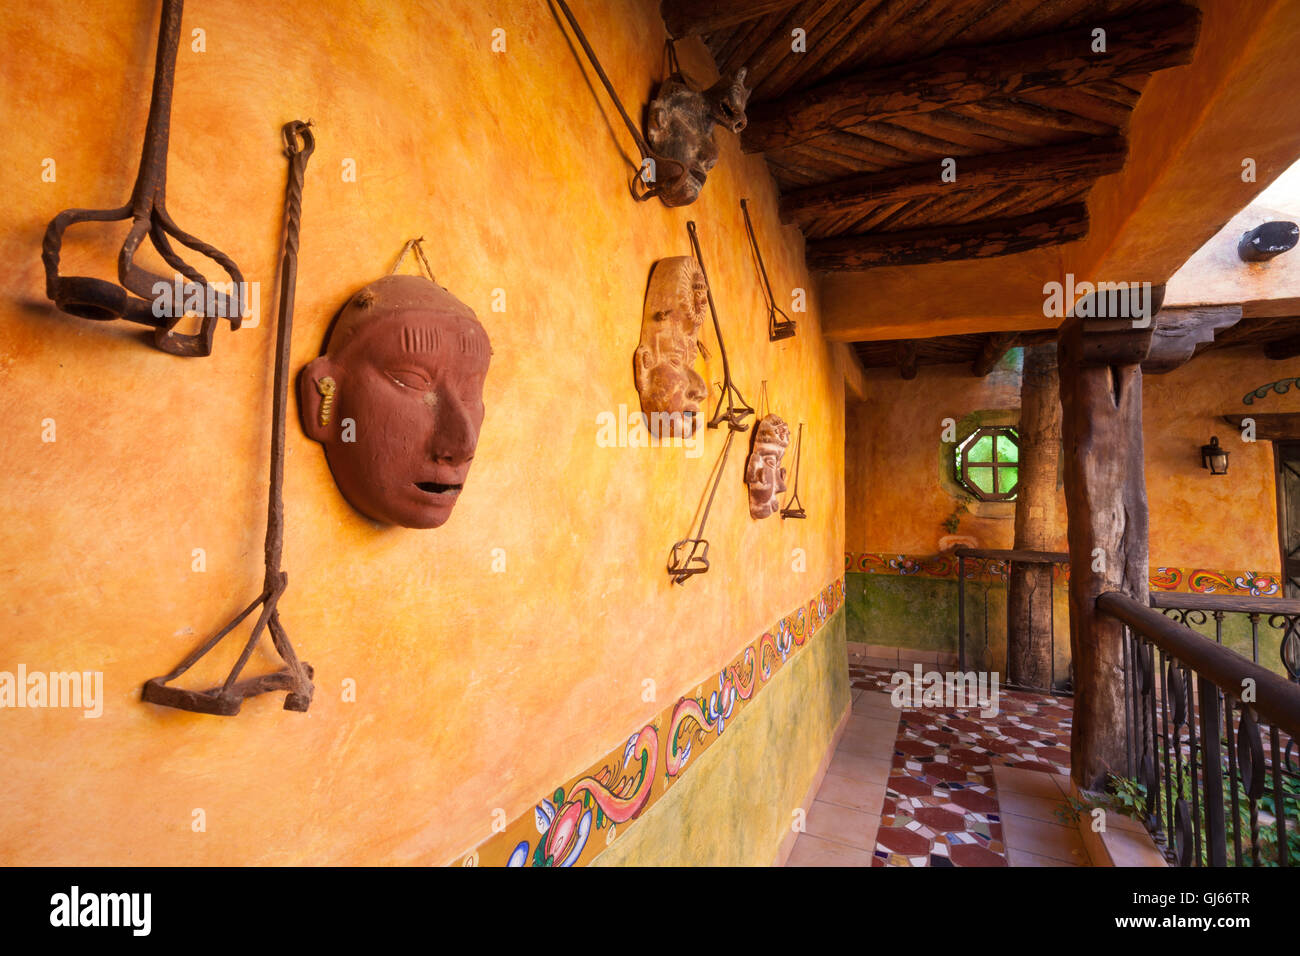 Artifacts decorate a wall of a colonial home in El Fuerte, Sinaloa, Mexico. - Stock Image